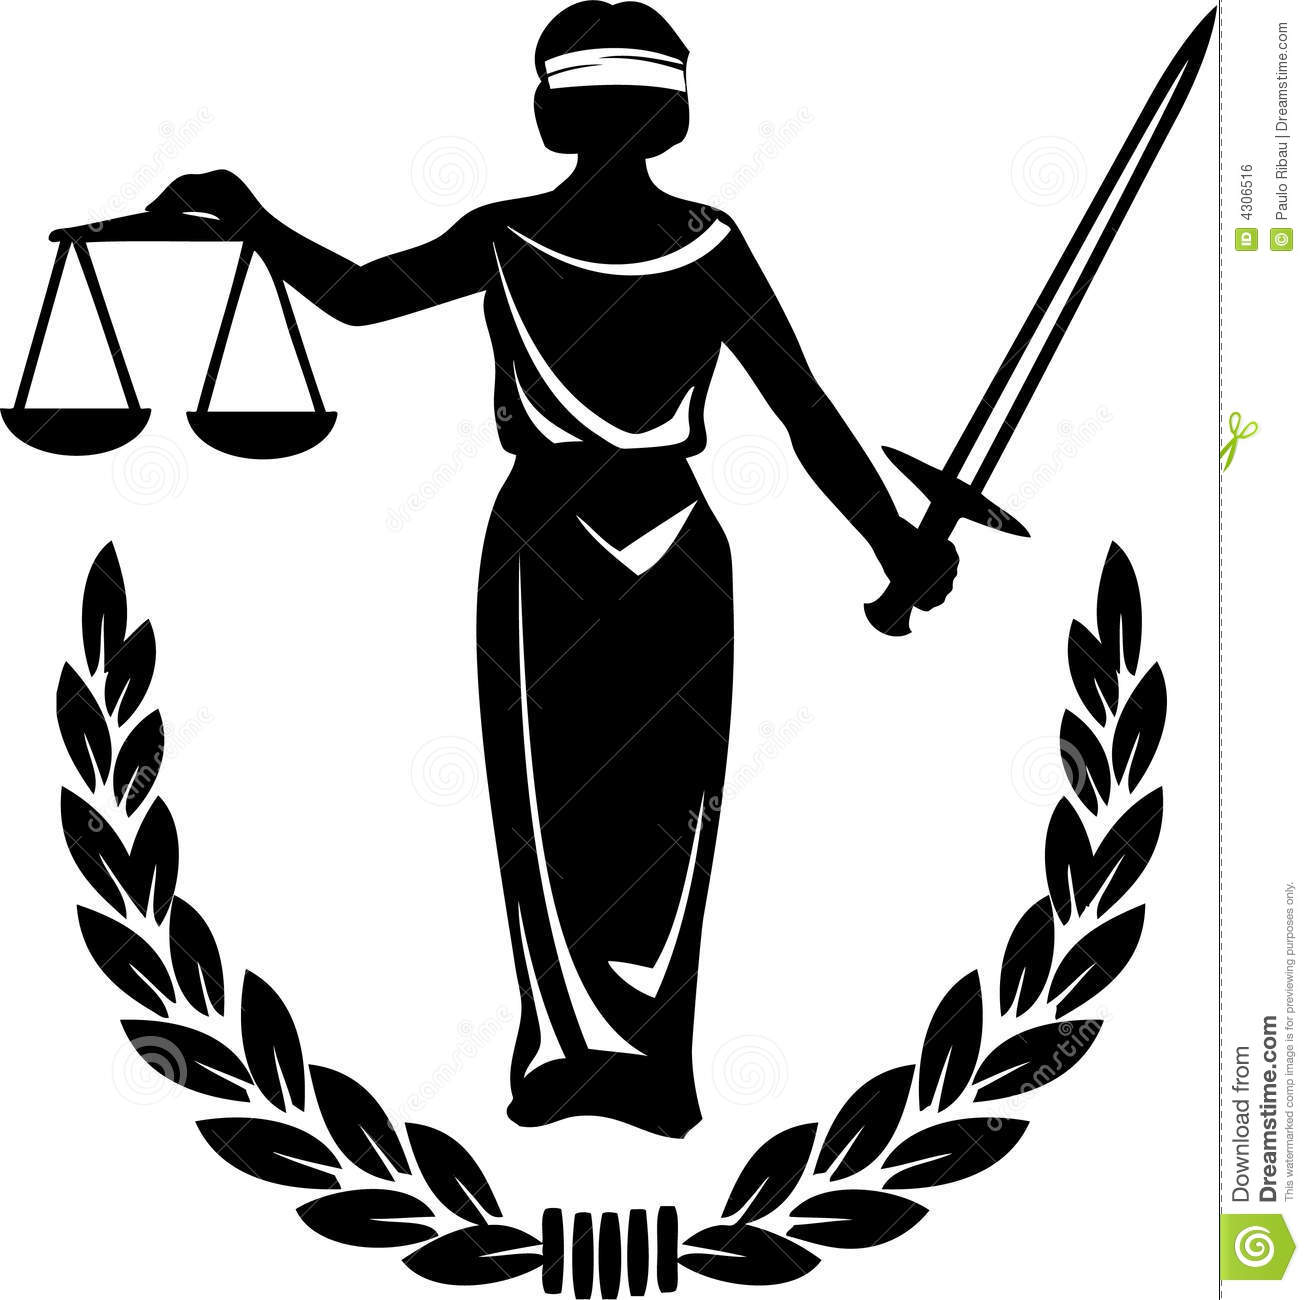 Justice for all on a sliding scale